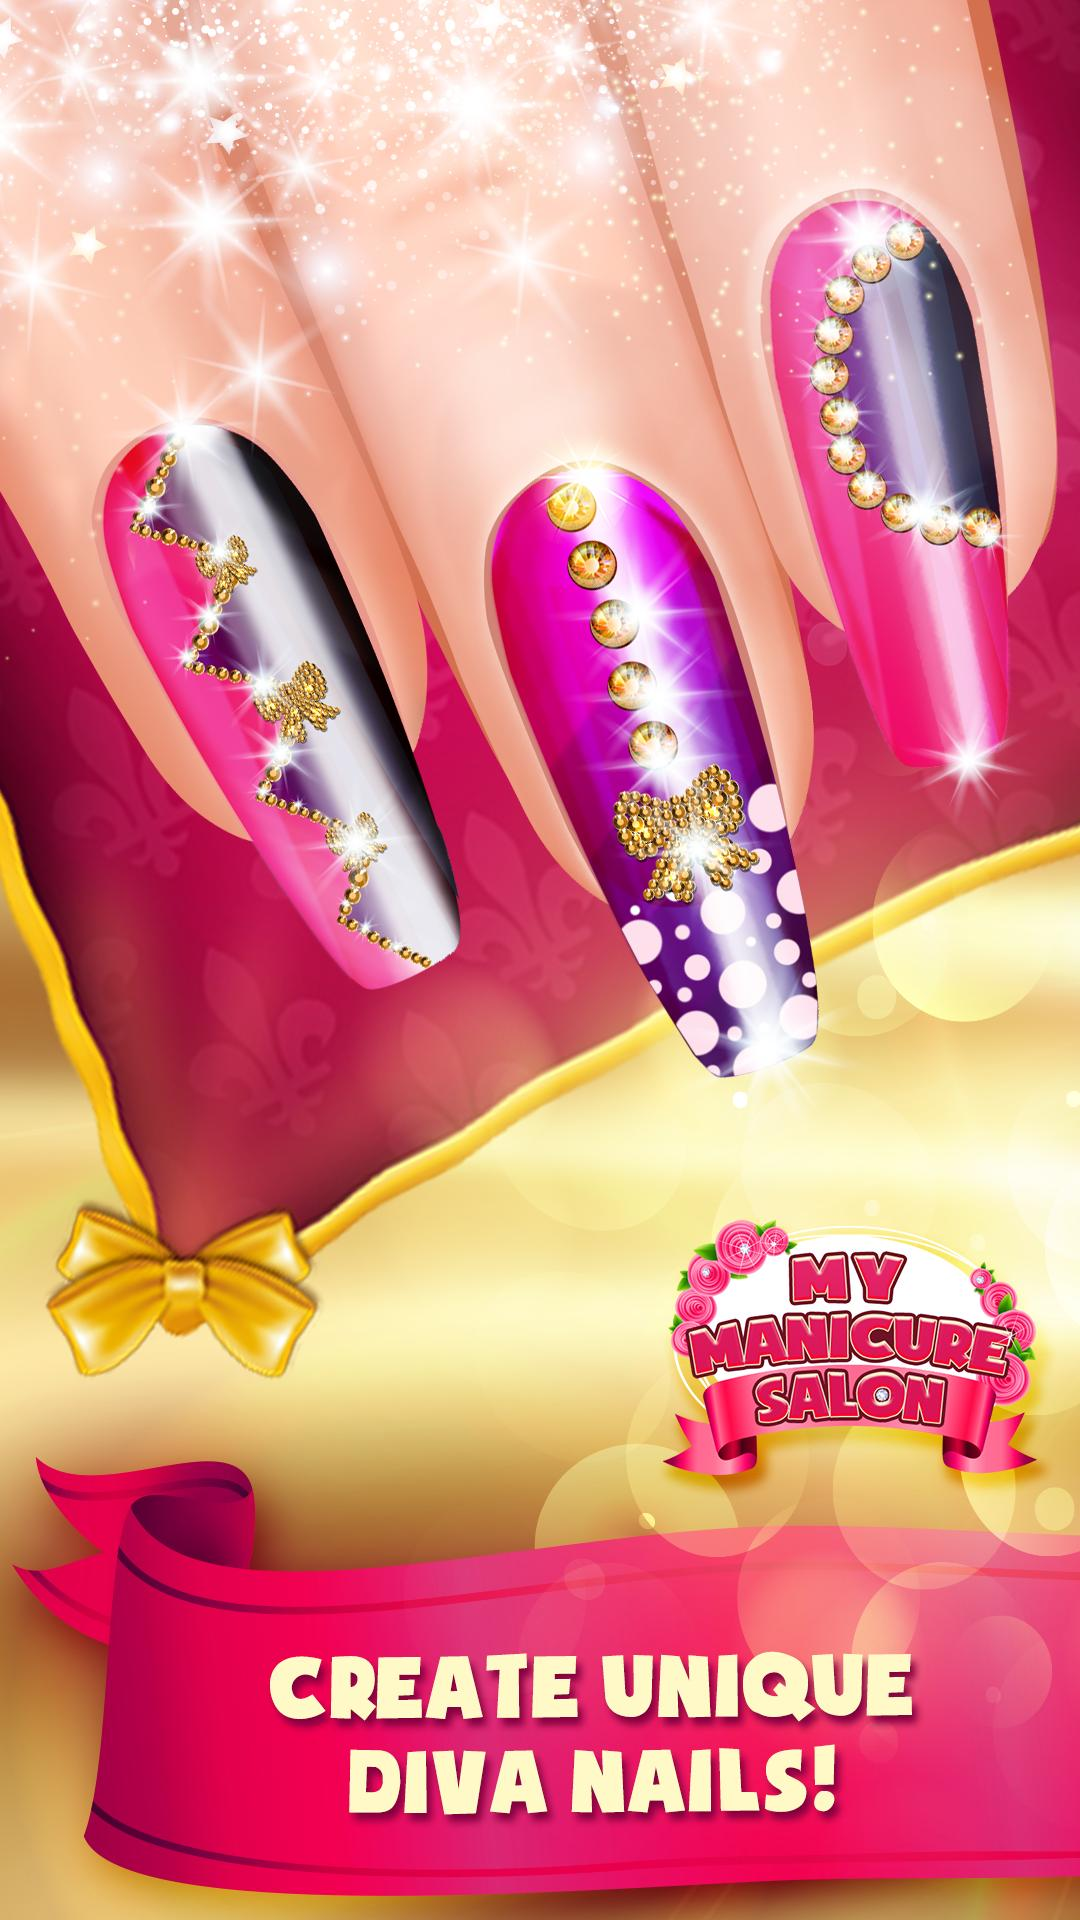 My Manicure Salon-Nail Art Designs Games for Android - APK Download